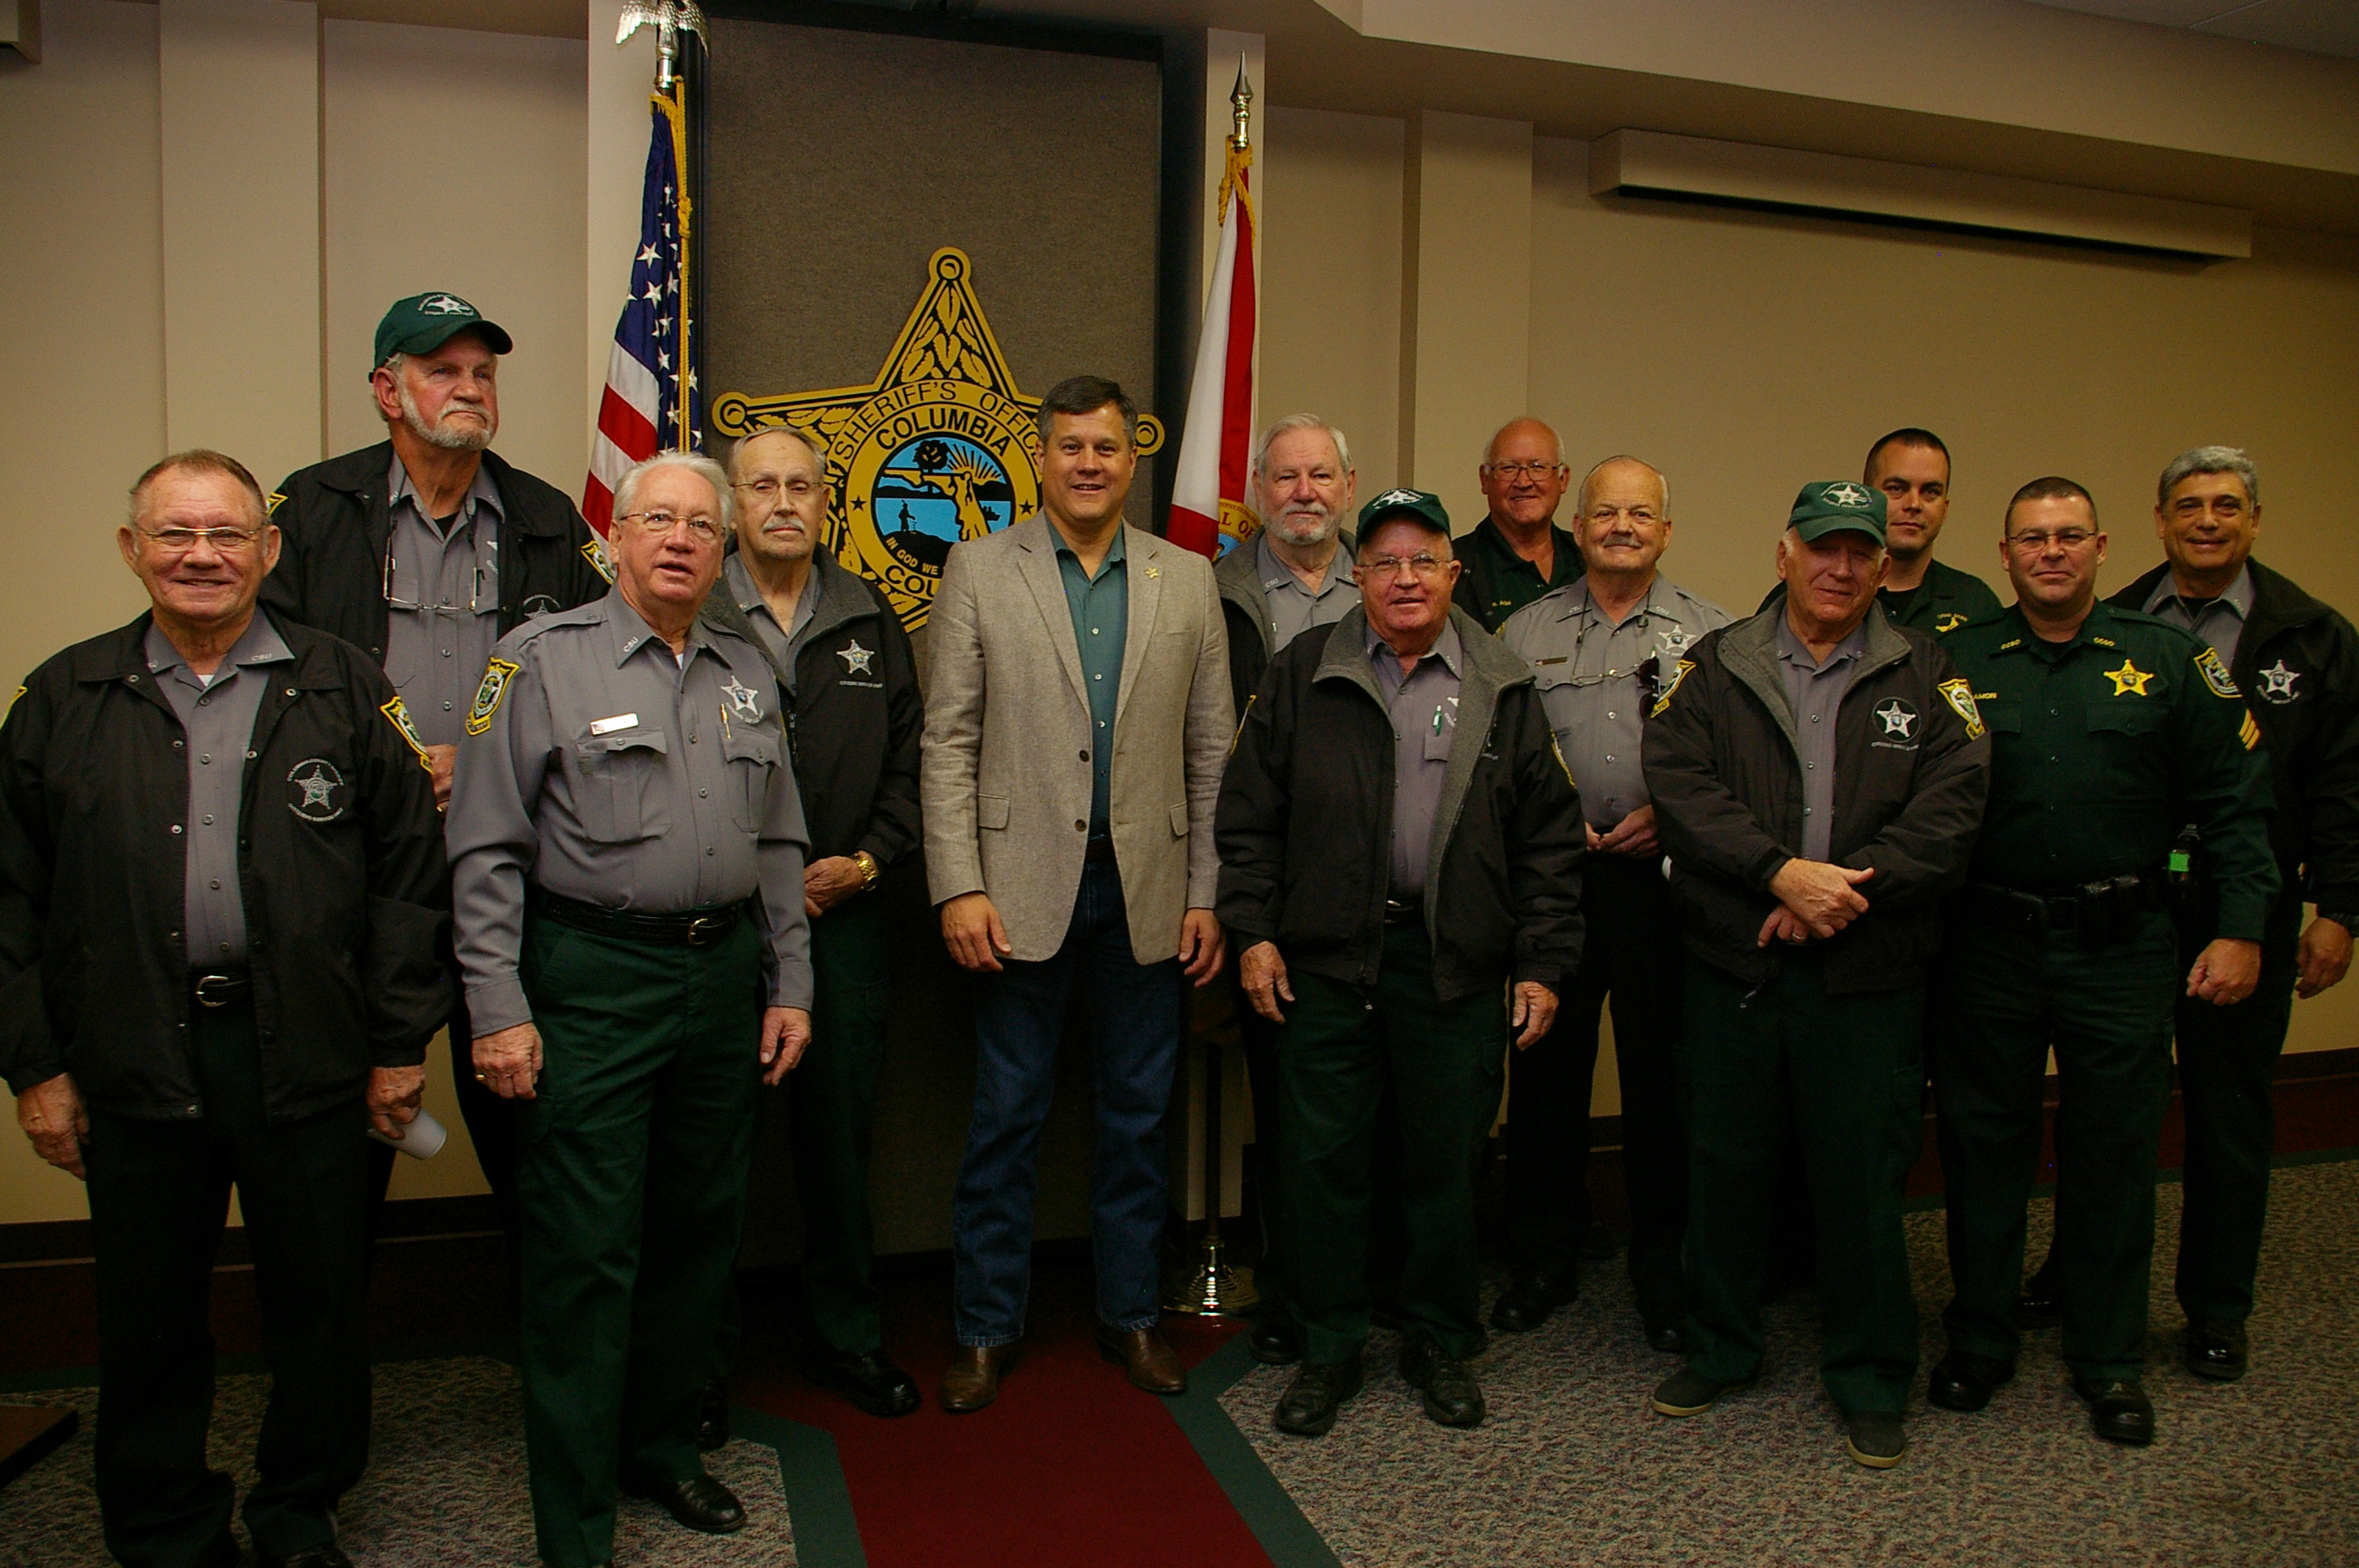 Sheriff Mark Hunter and Sergeant Rick Damon with the CSU members